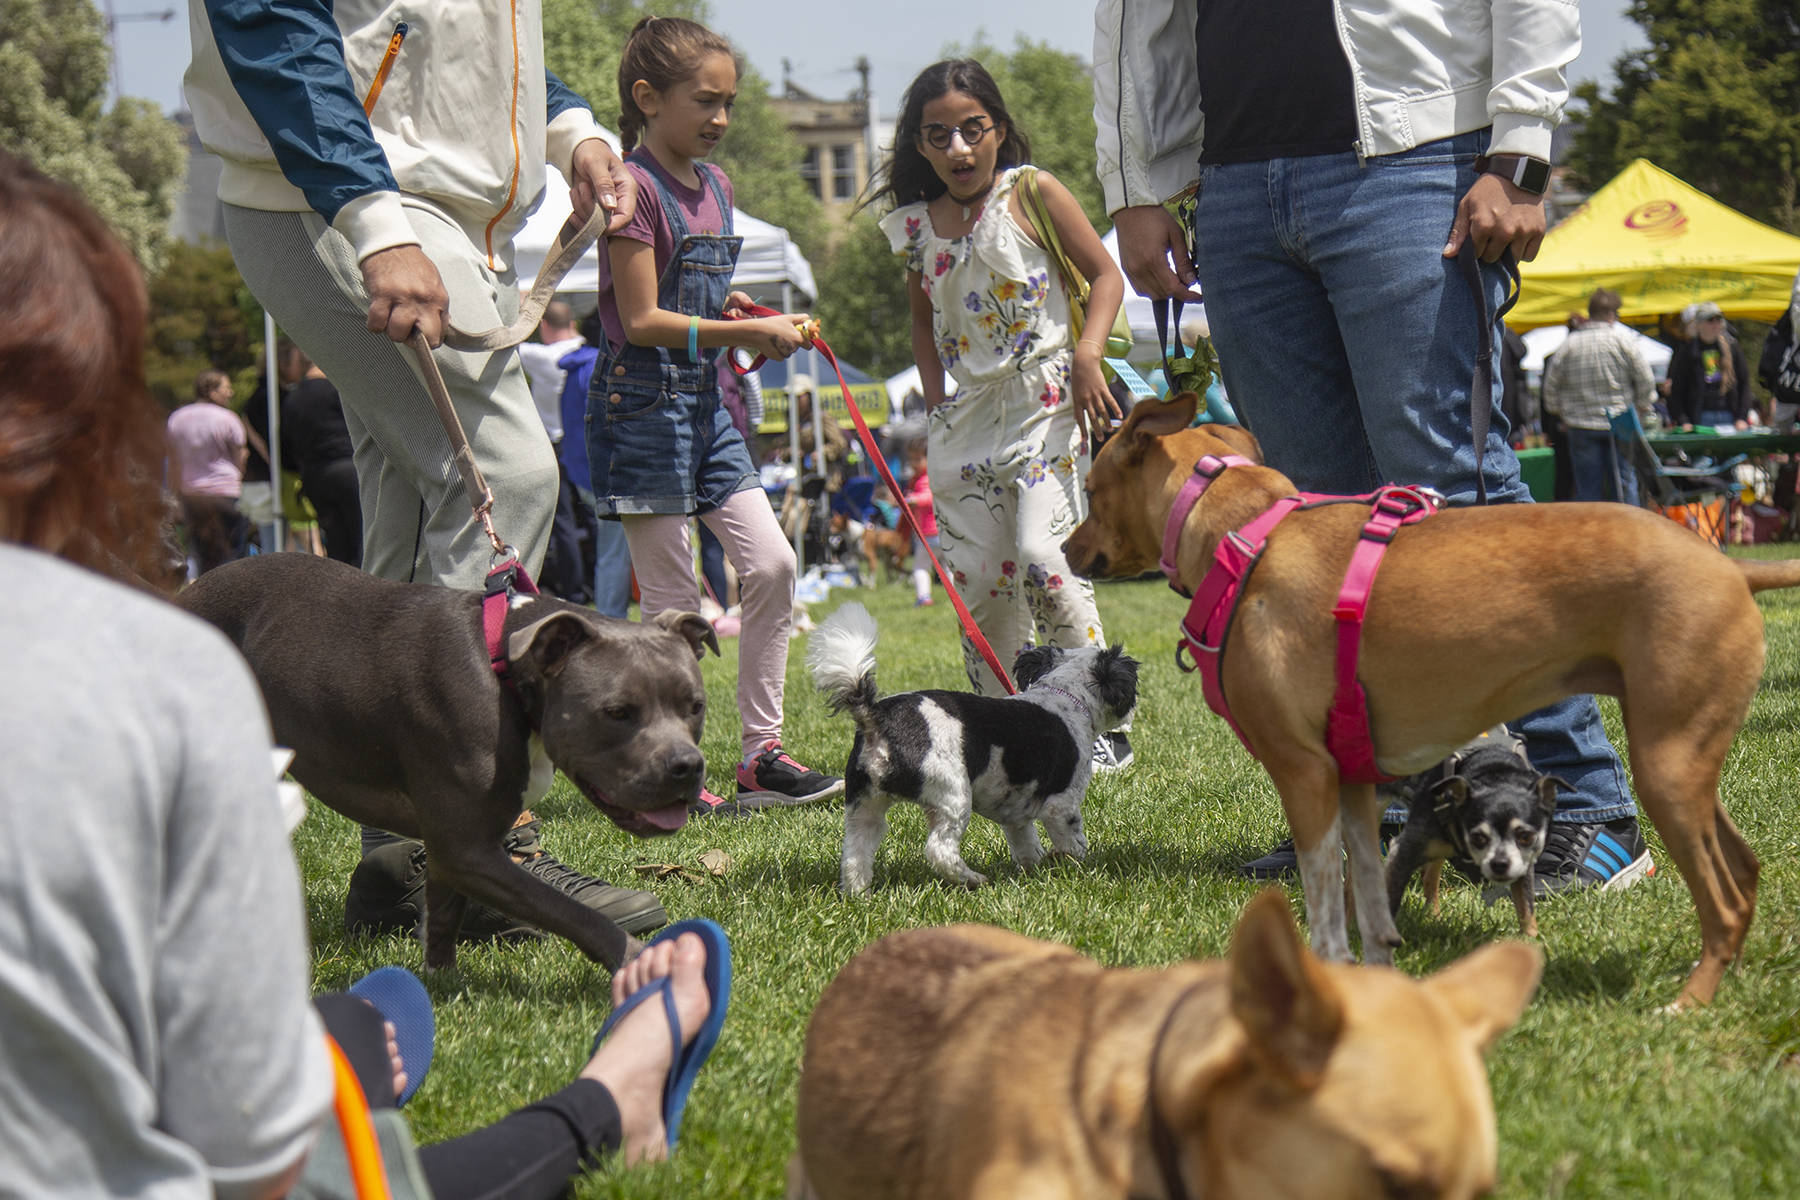 Two students meeting several dogs at the 12th annual Dogfest, a benefit event for McKinley Elementary School, in Duboce Park on Saturday, April 27, 2019. (Ellie Doyen/Special to S.F. Examiner)